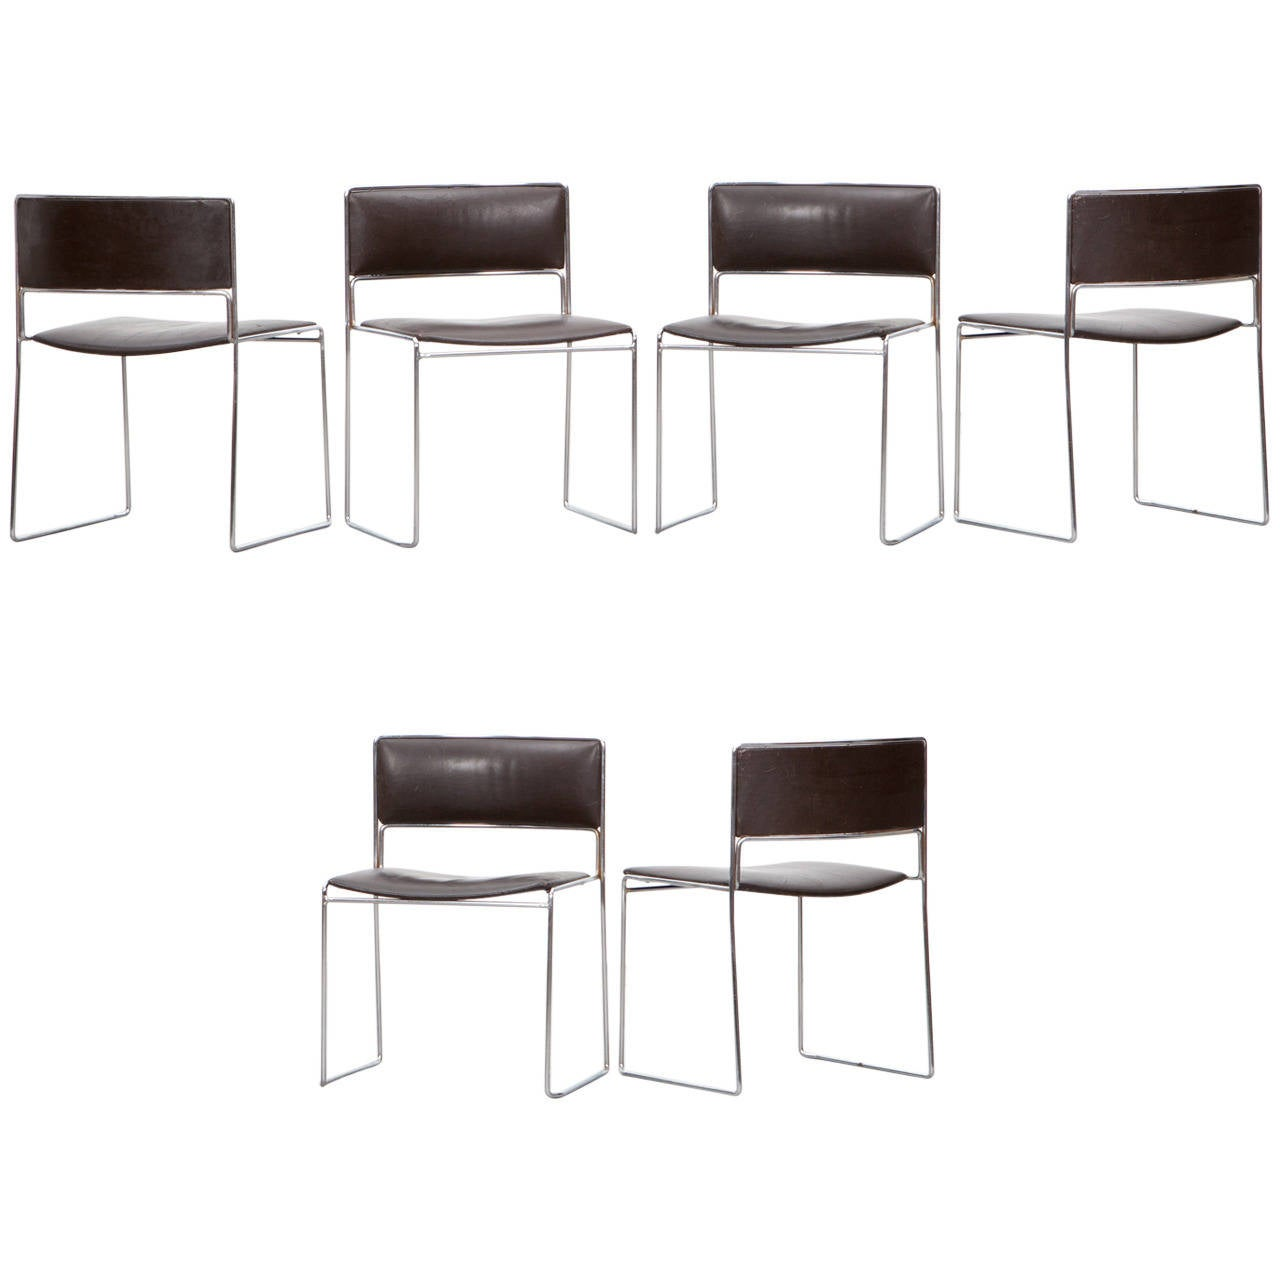 Tobago Stacking Chair Brown Chrome: Fabricius And Kastholm Grasshopper Lounge Chair At 1stdibs